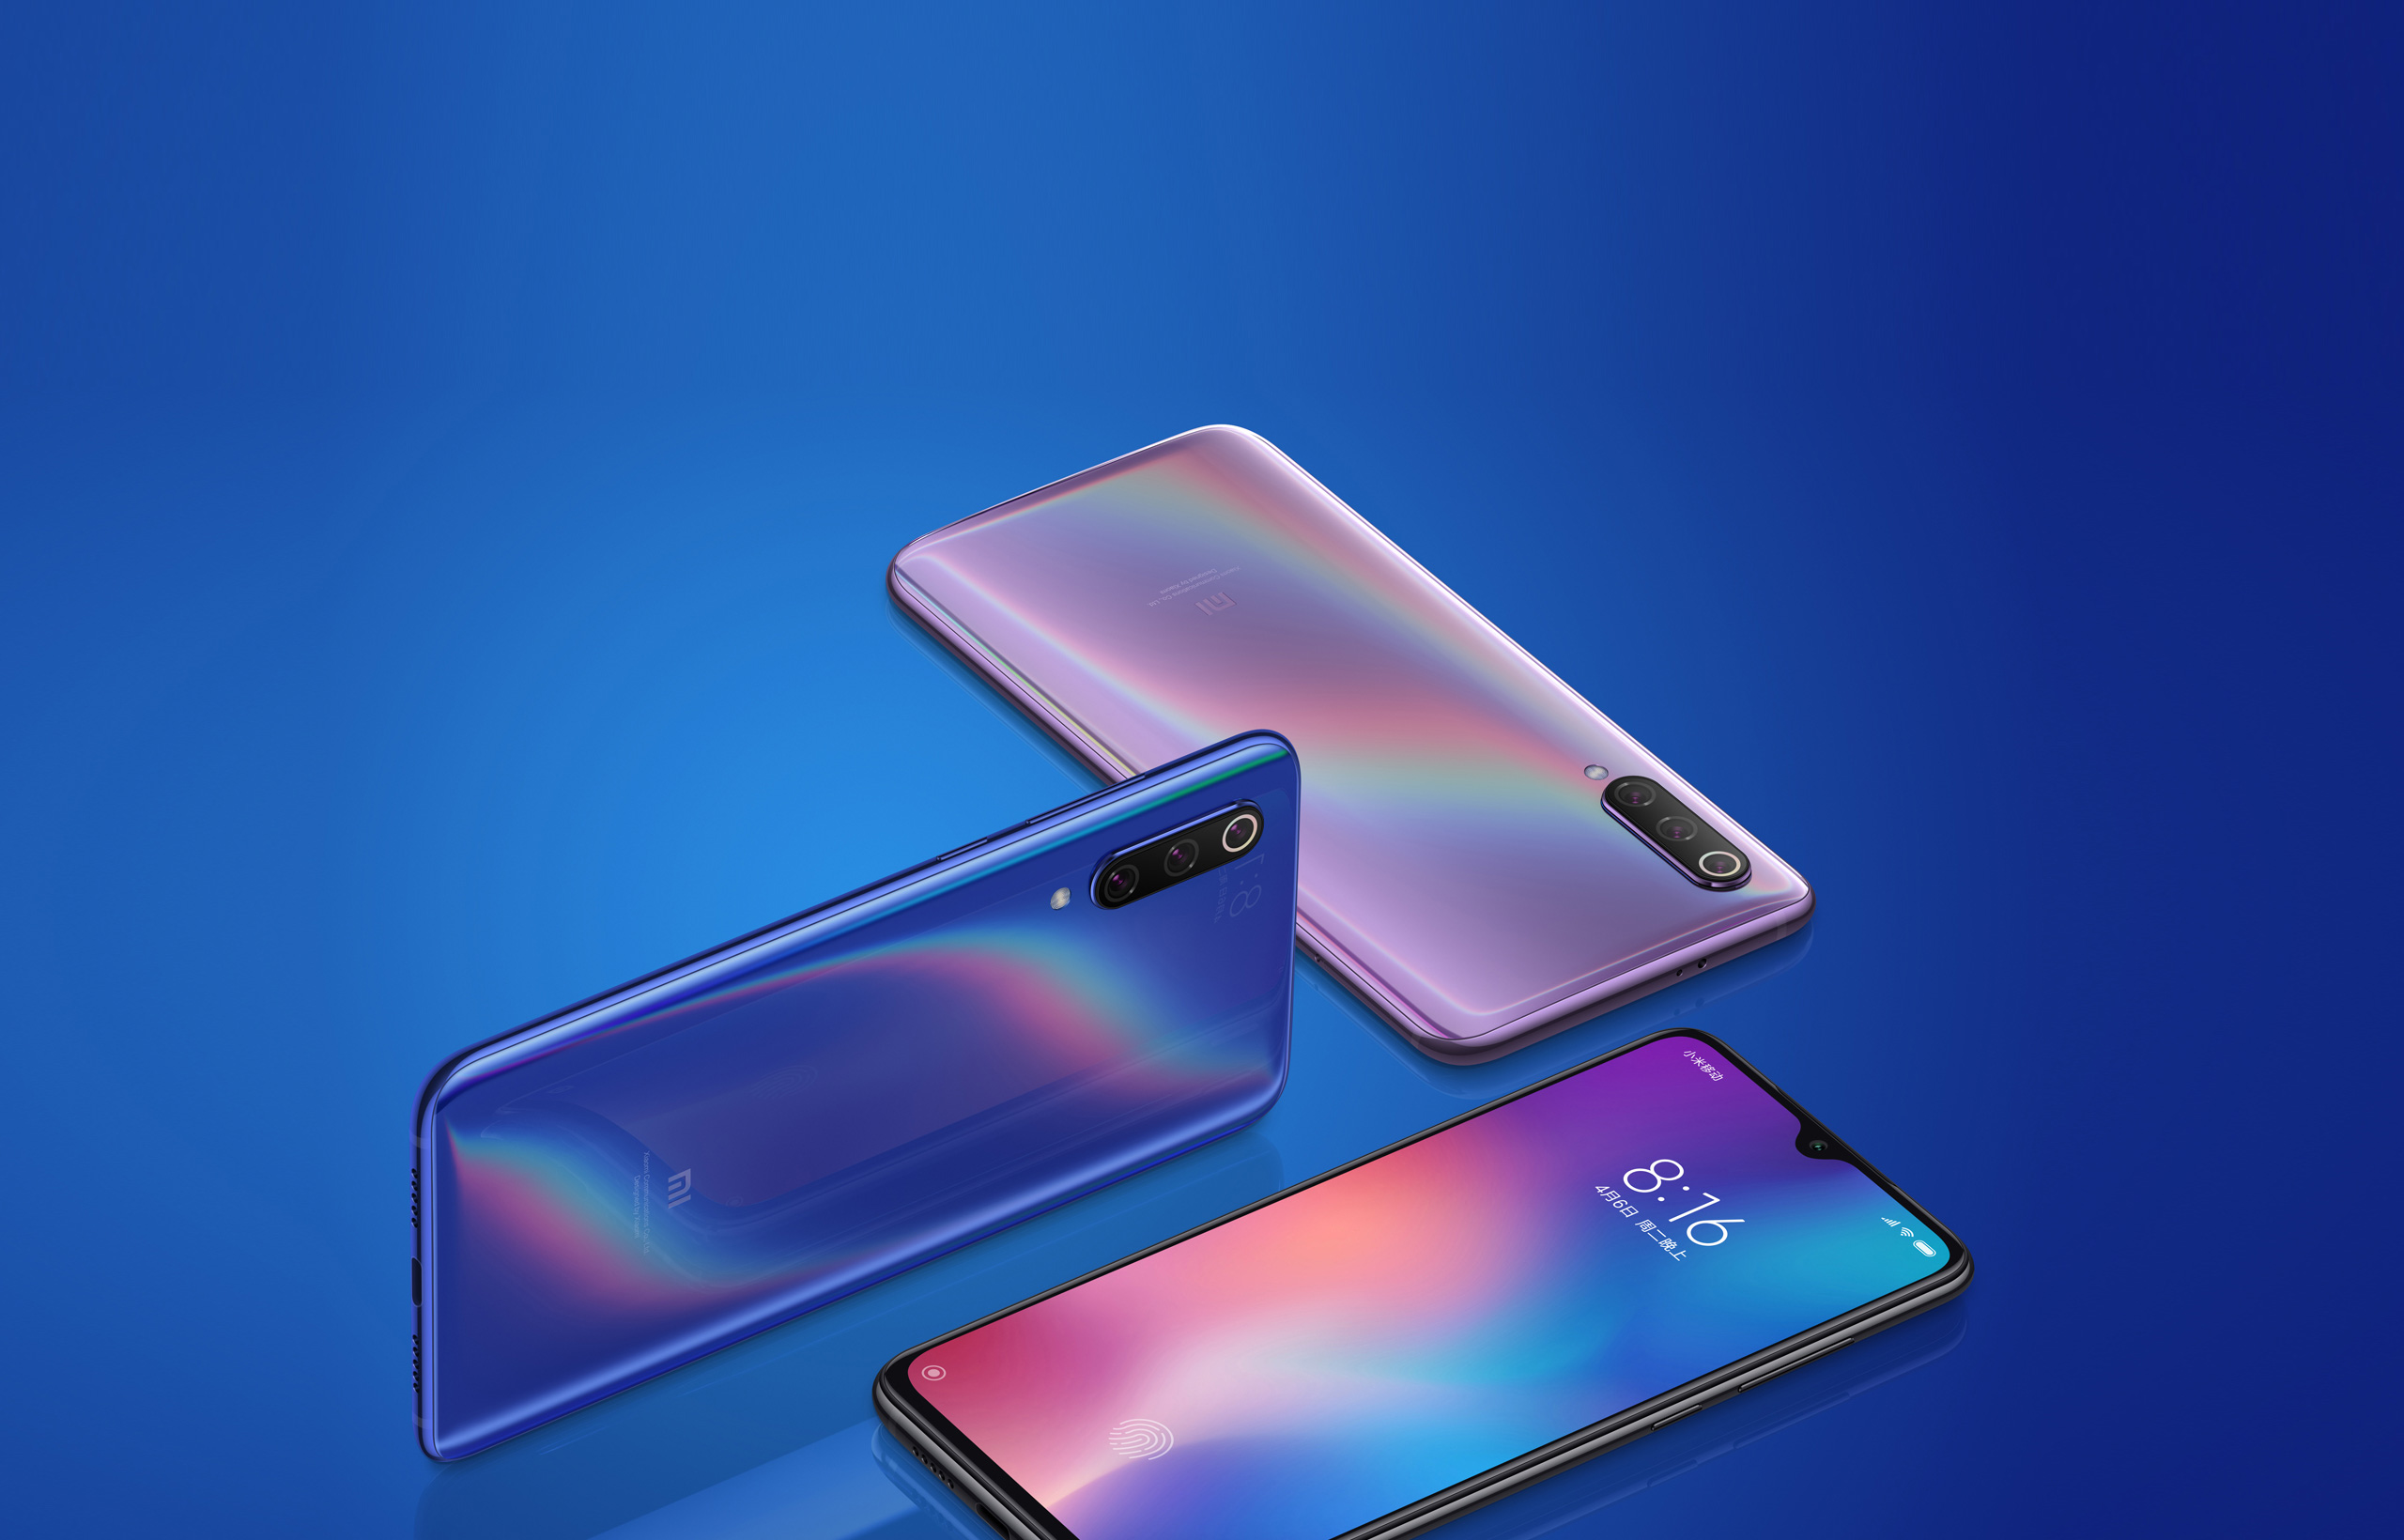 Xiaomi Mi 8, Xiaomi Mi MIX 3, Xiaomi, , Xiaomi Mi 9, Xiaomi Mi 1, Michigan, 小米9 SE, Qualcomm Snapdragon, Smartphone, mi 9, Blue, Product, Purple, Gadget, Mobile phone accessories, Technology, Electronic device, Mobile phone, Communication Device, Material property